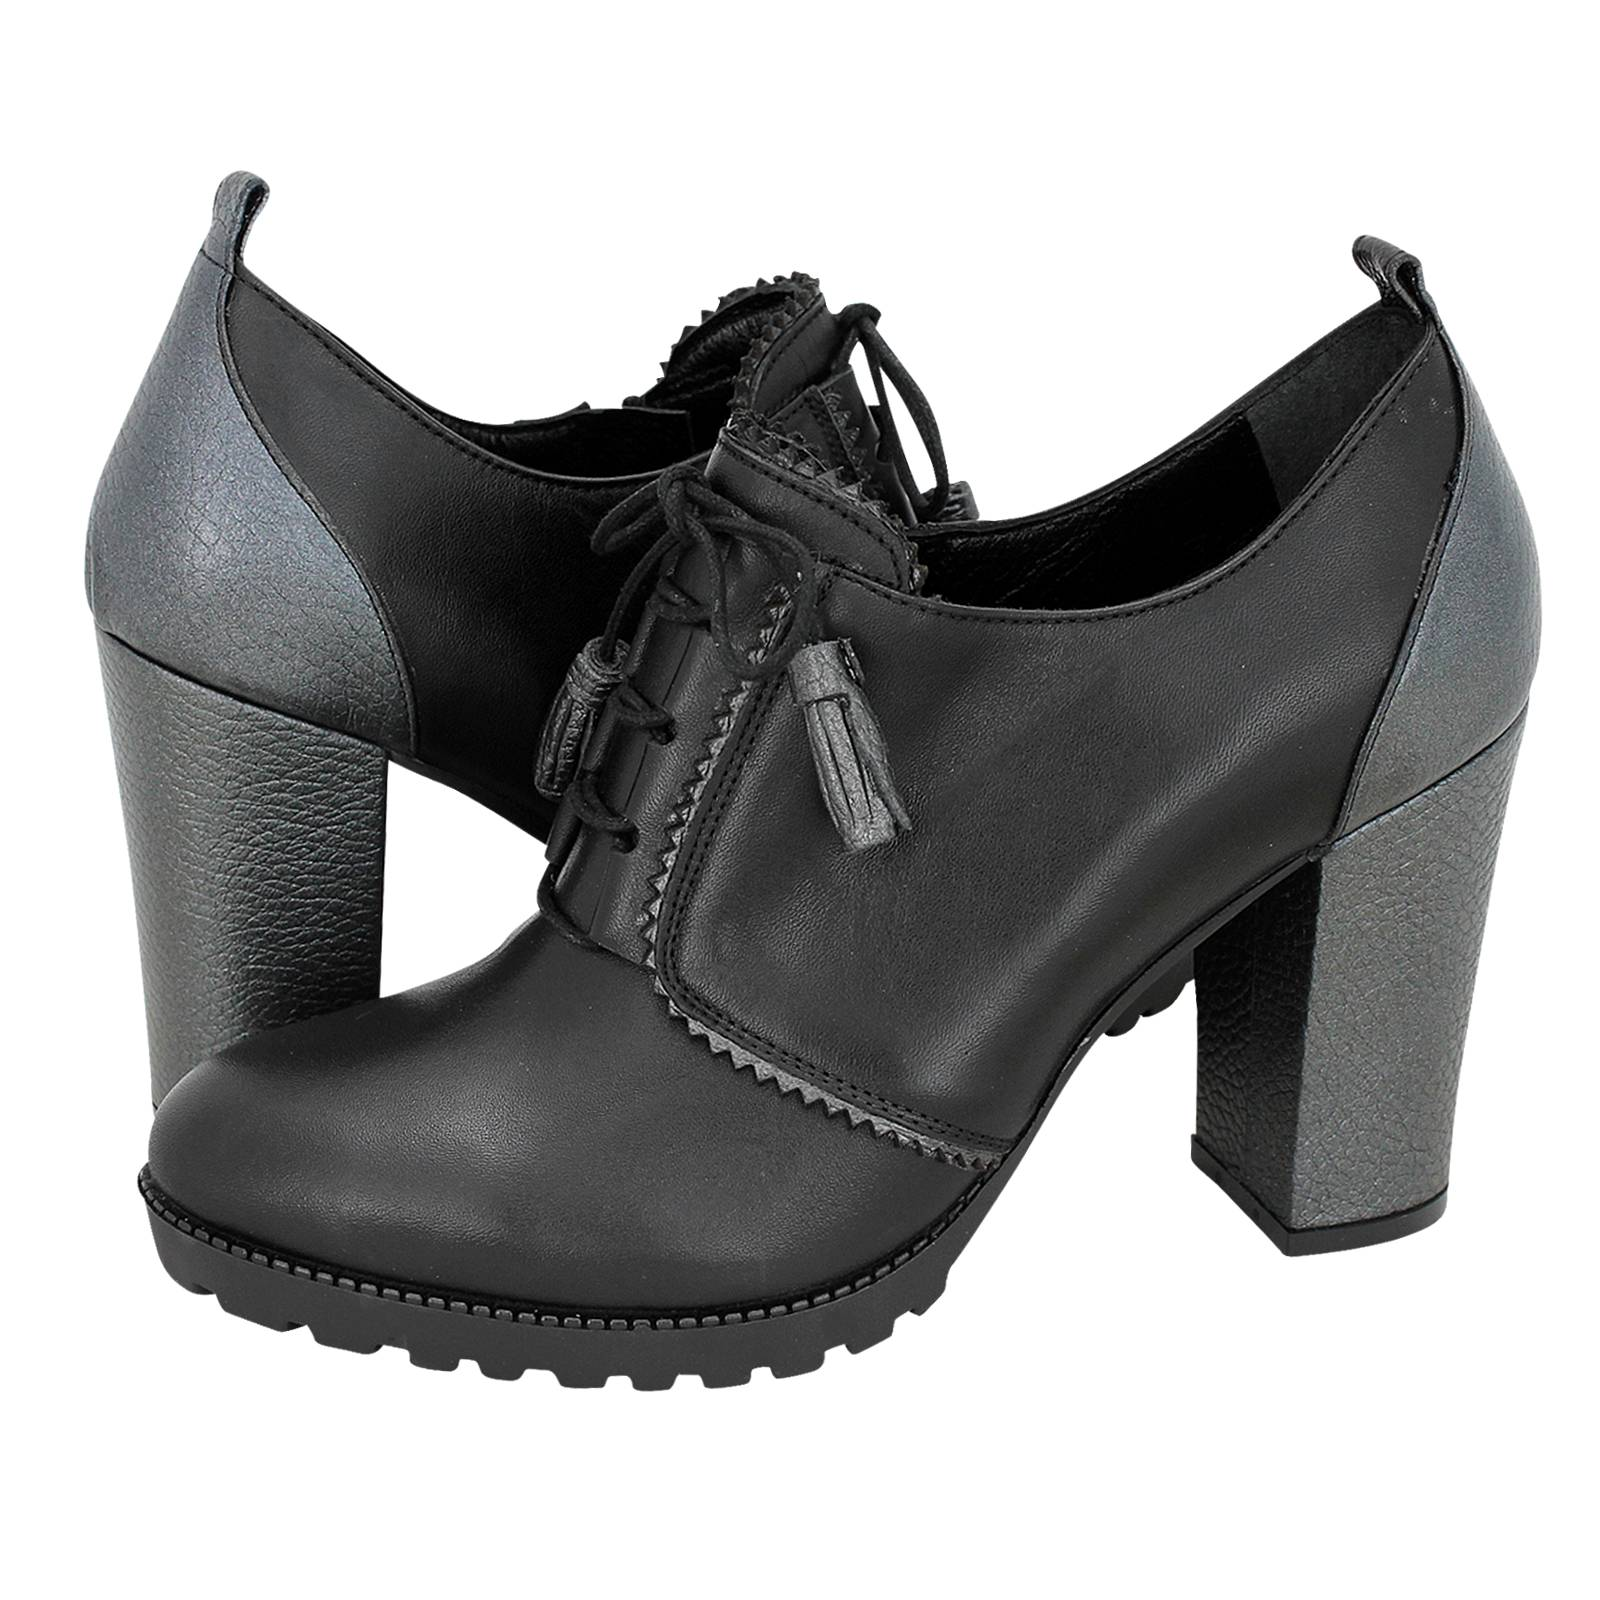 Tairnbach - Esthissis Women s low boots made of leather - Gianna ... b8ff6aaa175